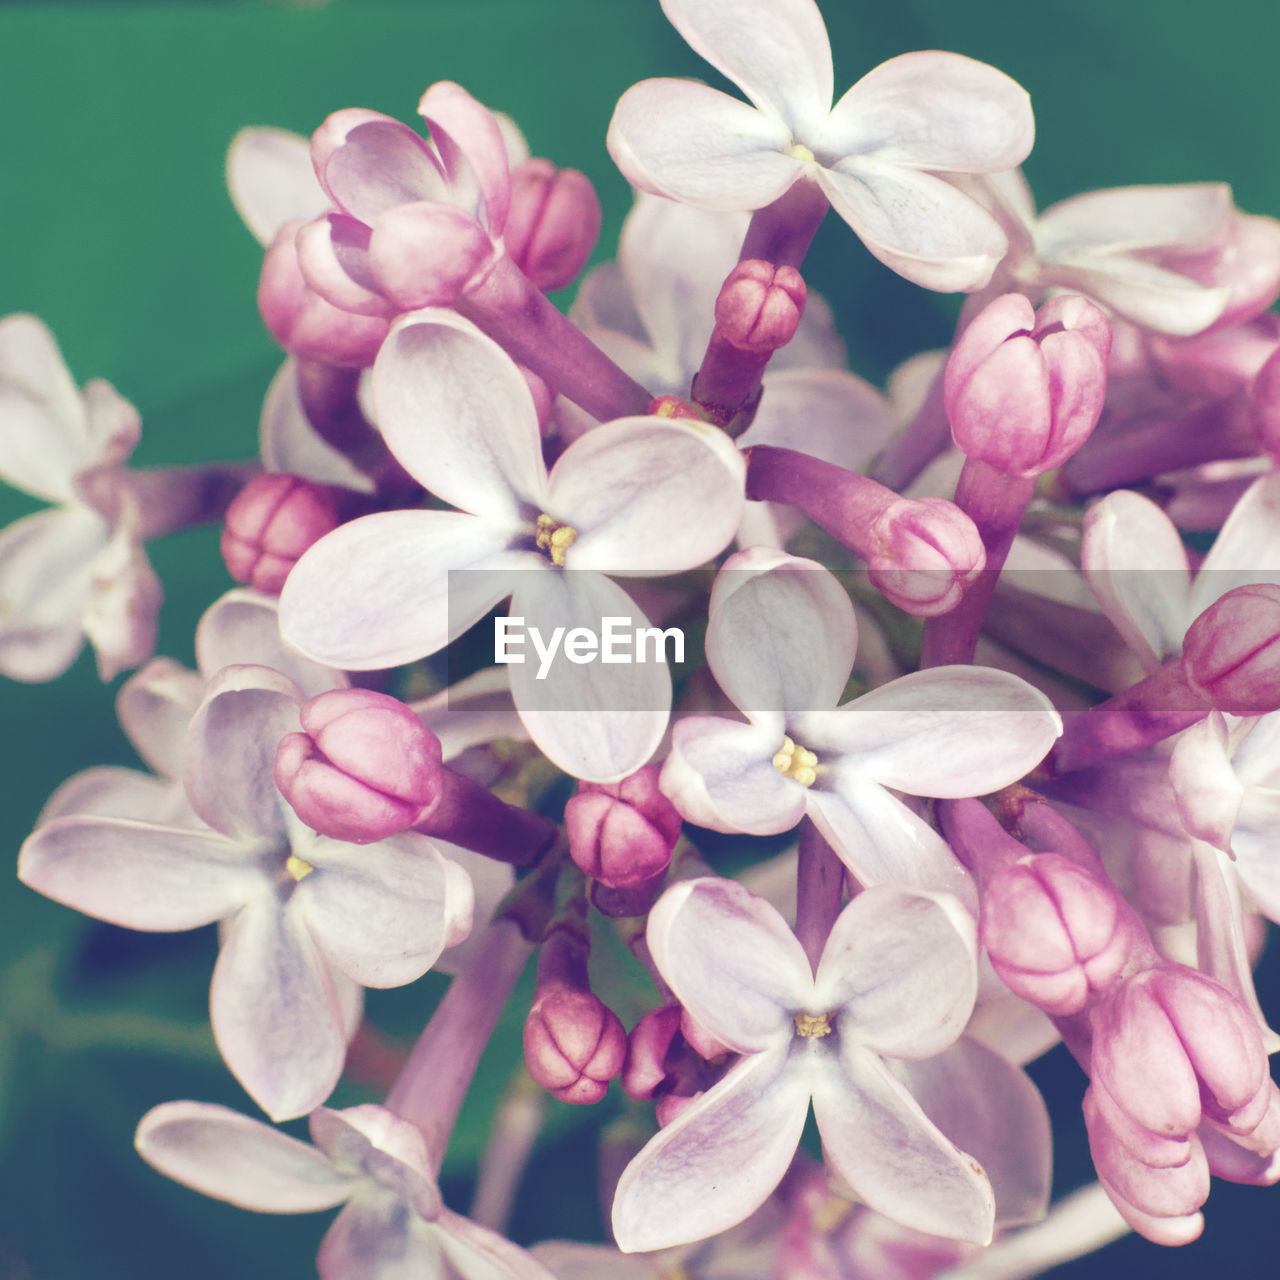 flower, flowering plant, fragility, vulnerability, beauty in nature, petal, plant, close-up, flower head, inflorescence, freshness, growth, pink color, nature, no people, day, outdoors, botany, pollen, blossom, bunch of flowers, lilac